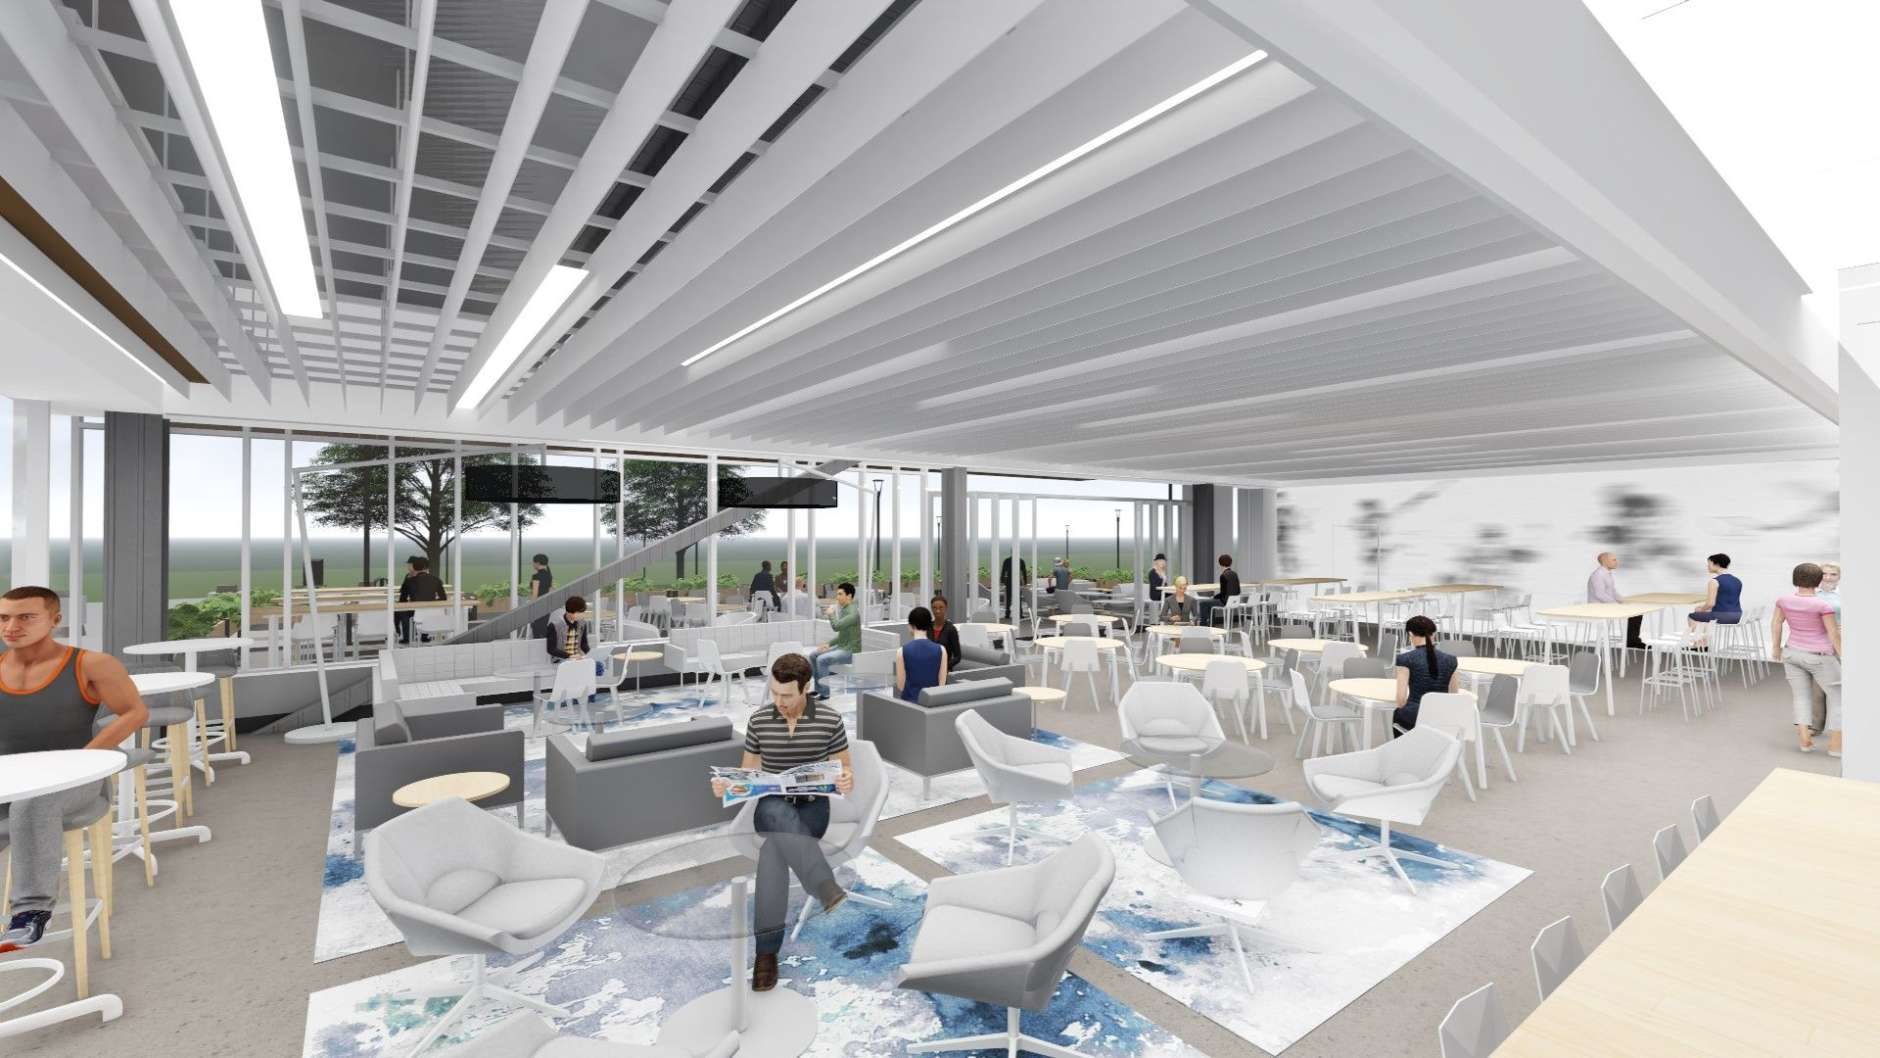 """""""Our new concept at The St. James gives me the opportunity to fulfill my passion to help active people meet their high demand needs,"""" Mendelsohn said. (Courtesy HKS Architects)"""